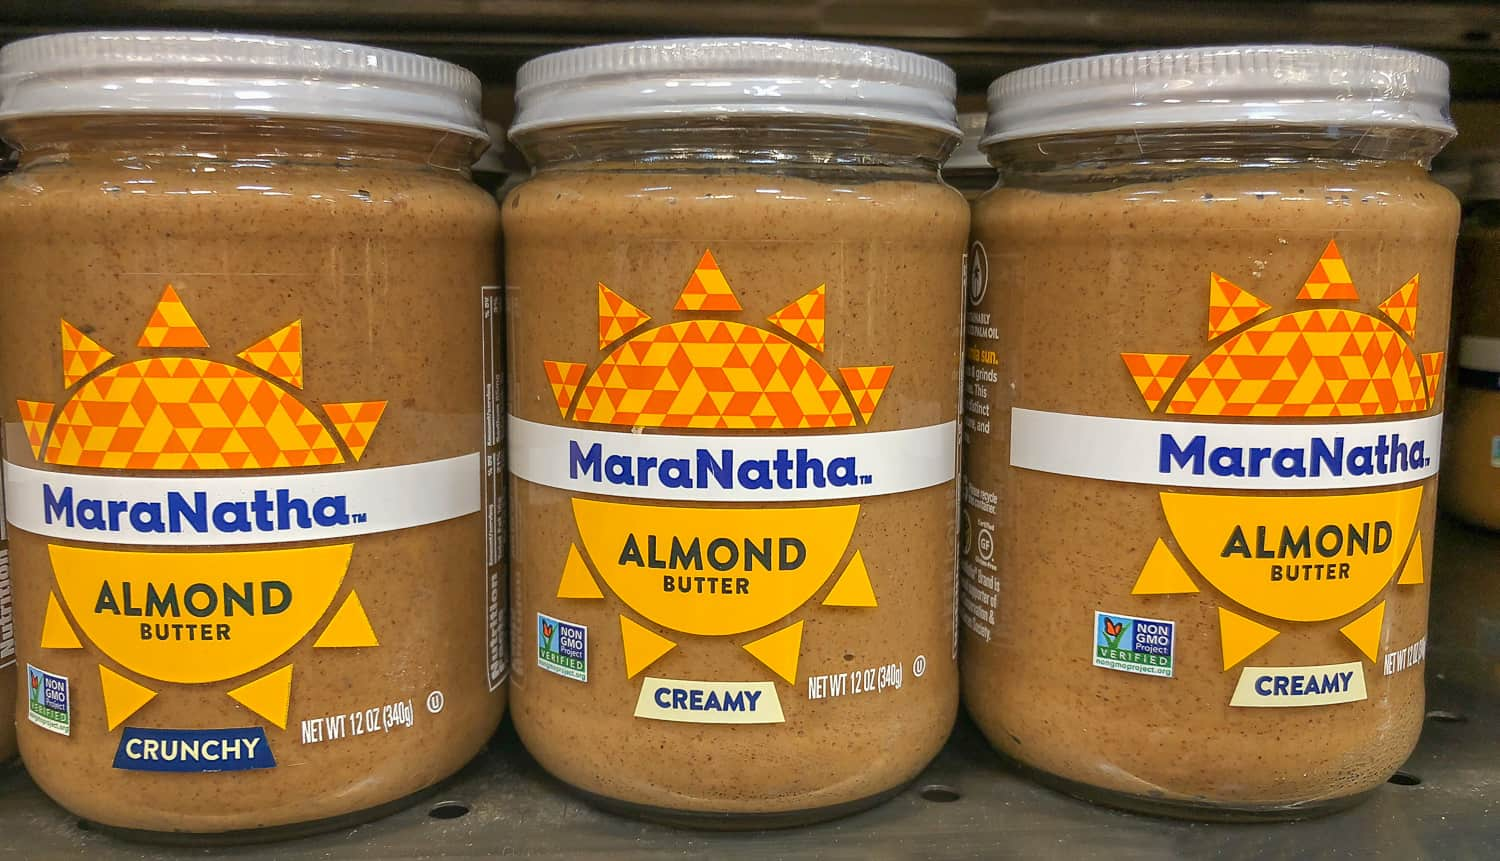 3 jars of almond butter